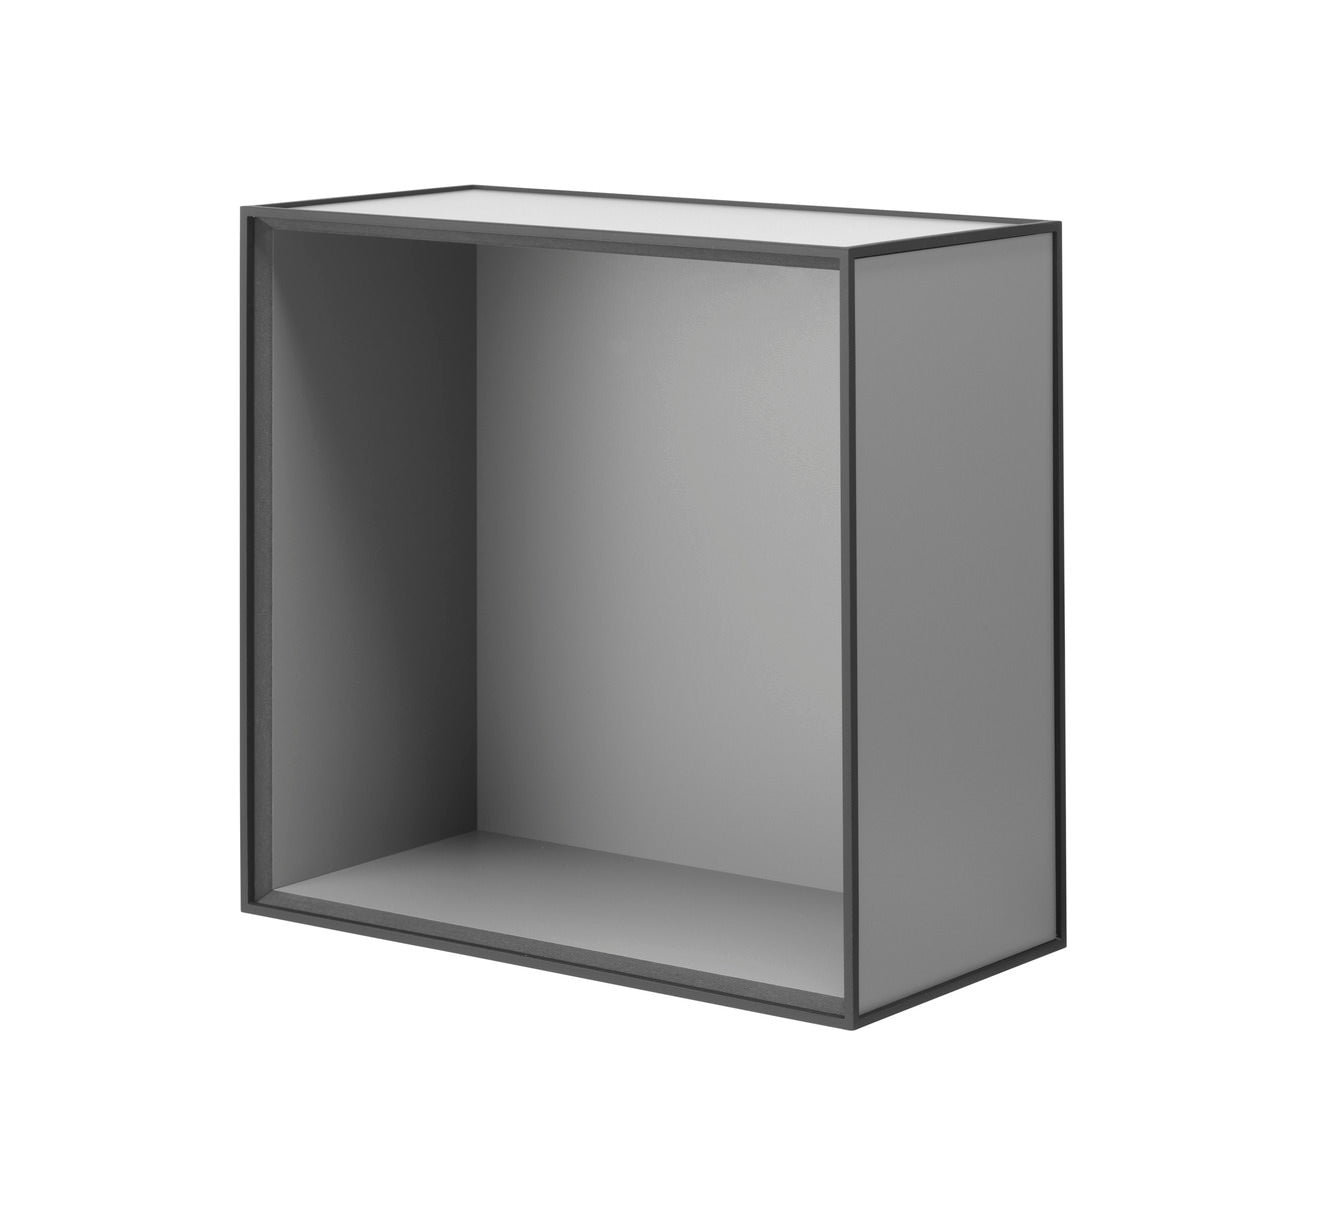 Frame 42 INCL door, 21x42x42, dark grey fra By Lassen